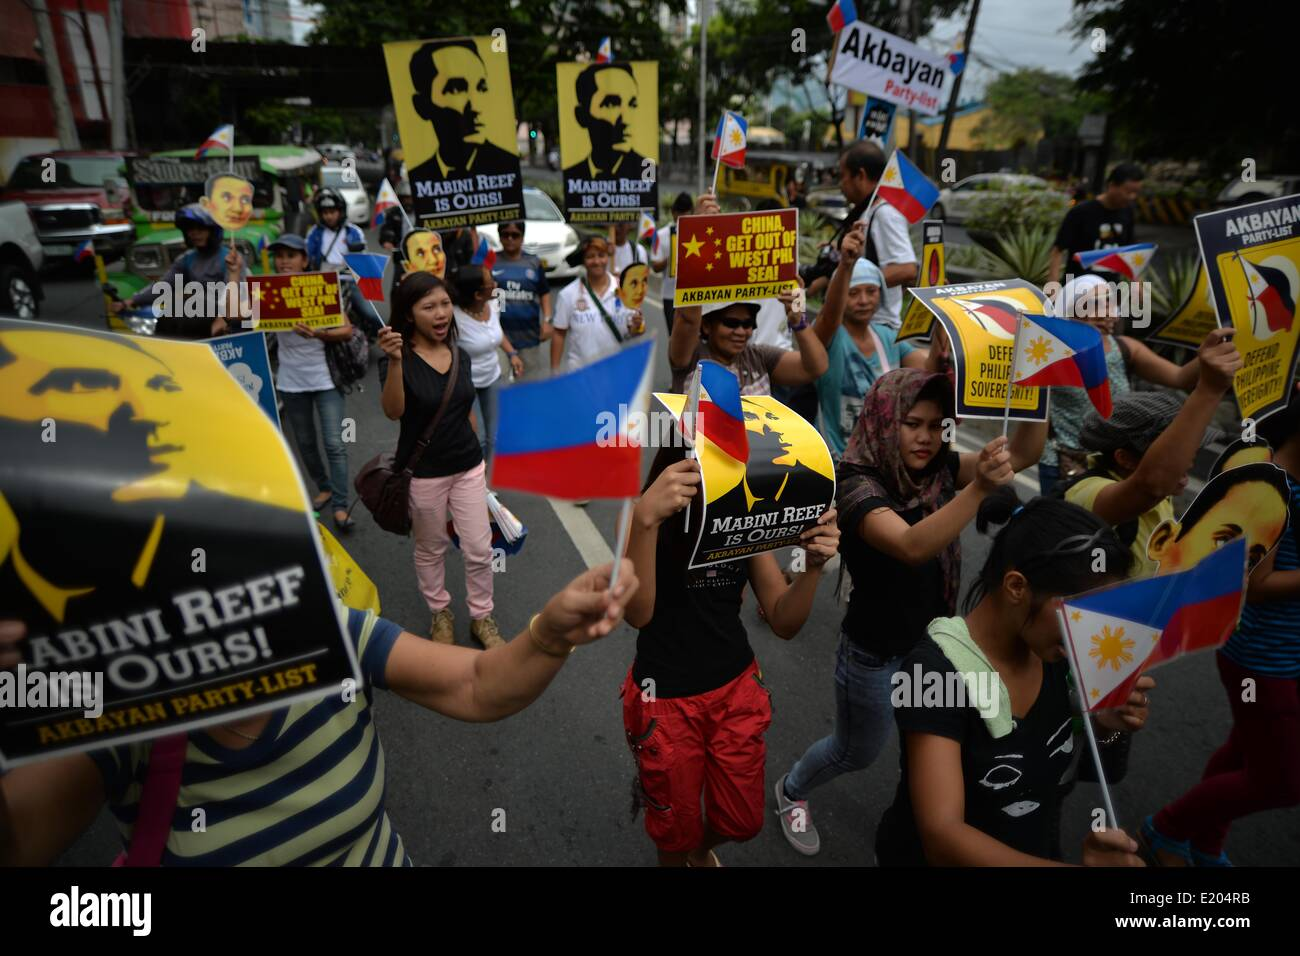 Makati, Philippines. 12th June, 2014. Demonstrators hold a protest a protest outside the Chinese consulate in Makati, - Stock Image